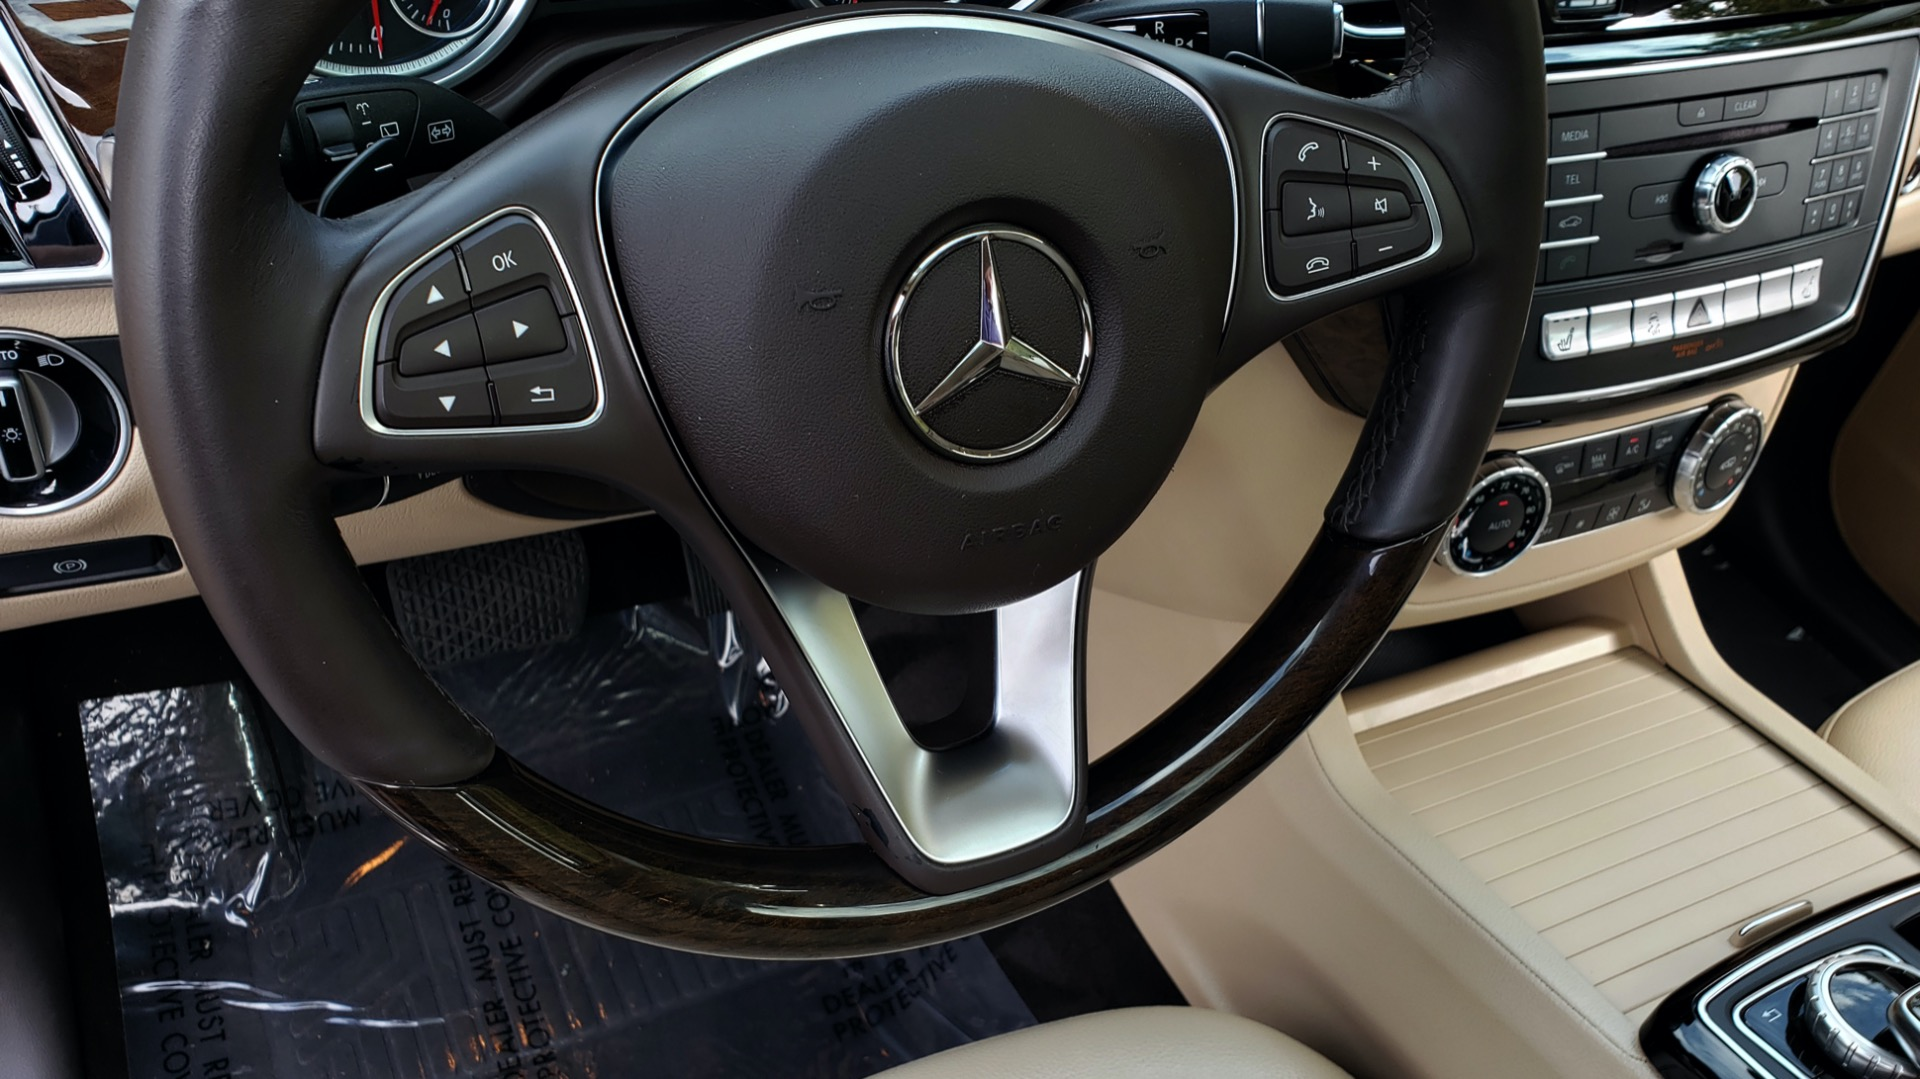 Used 2016 Mercedes-Benz GLE 350 PREMIUM / NAV / SUNROOF / BACK-UP CAMERA / LANE TRACKING for sale Sold at Formula Imports in Charlotte NC 28227 46